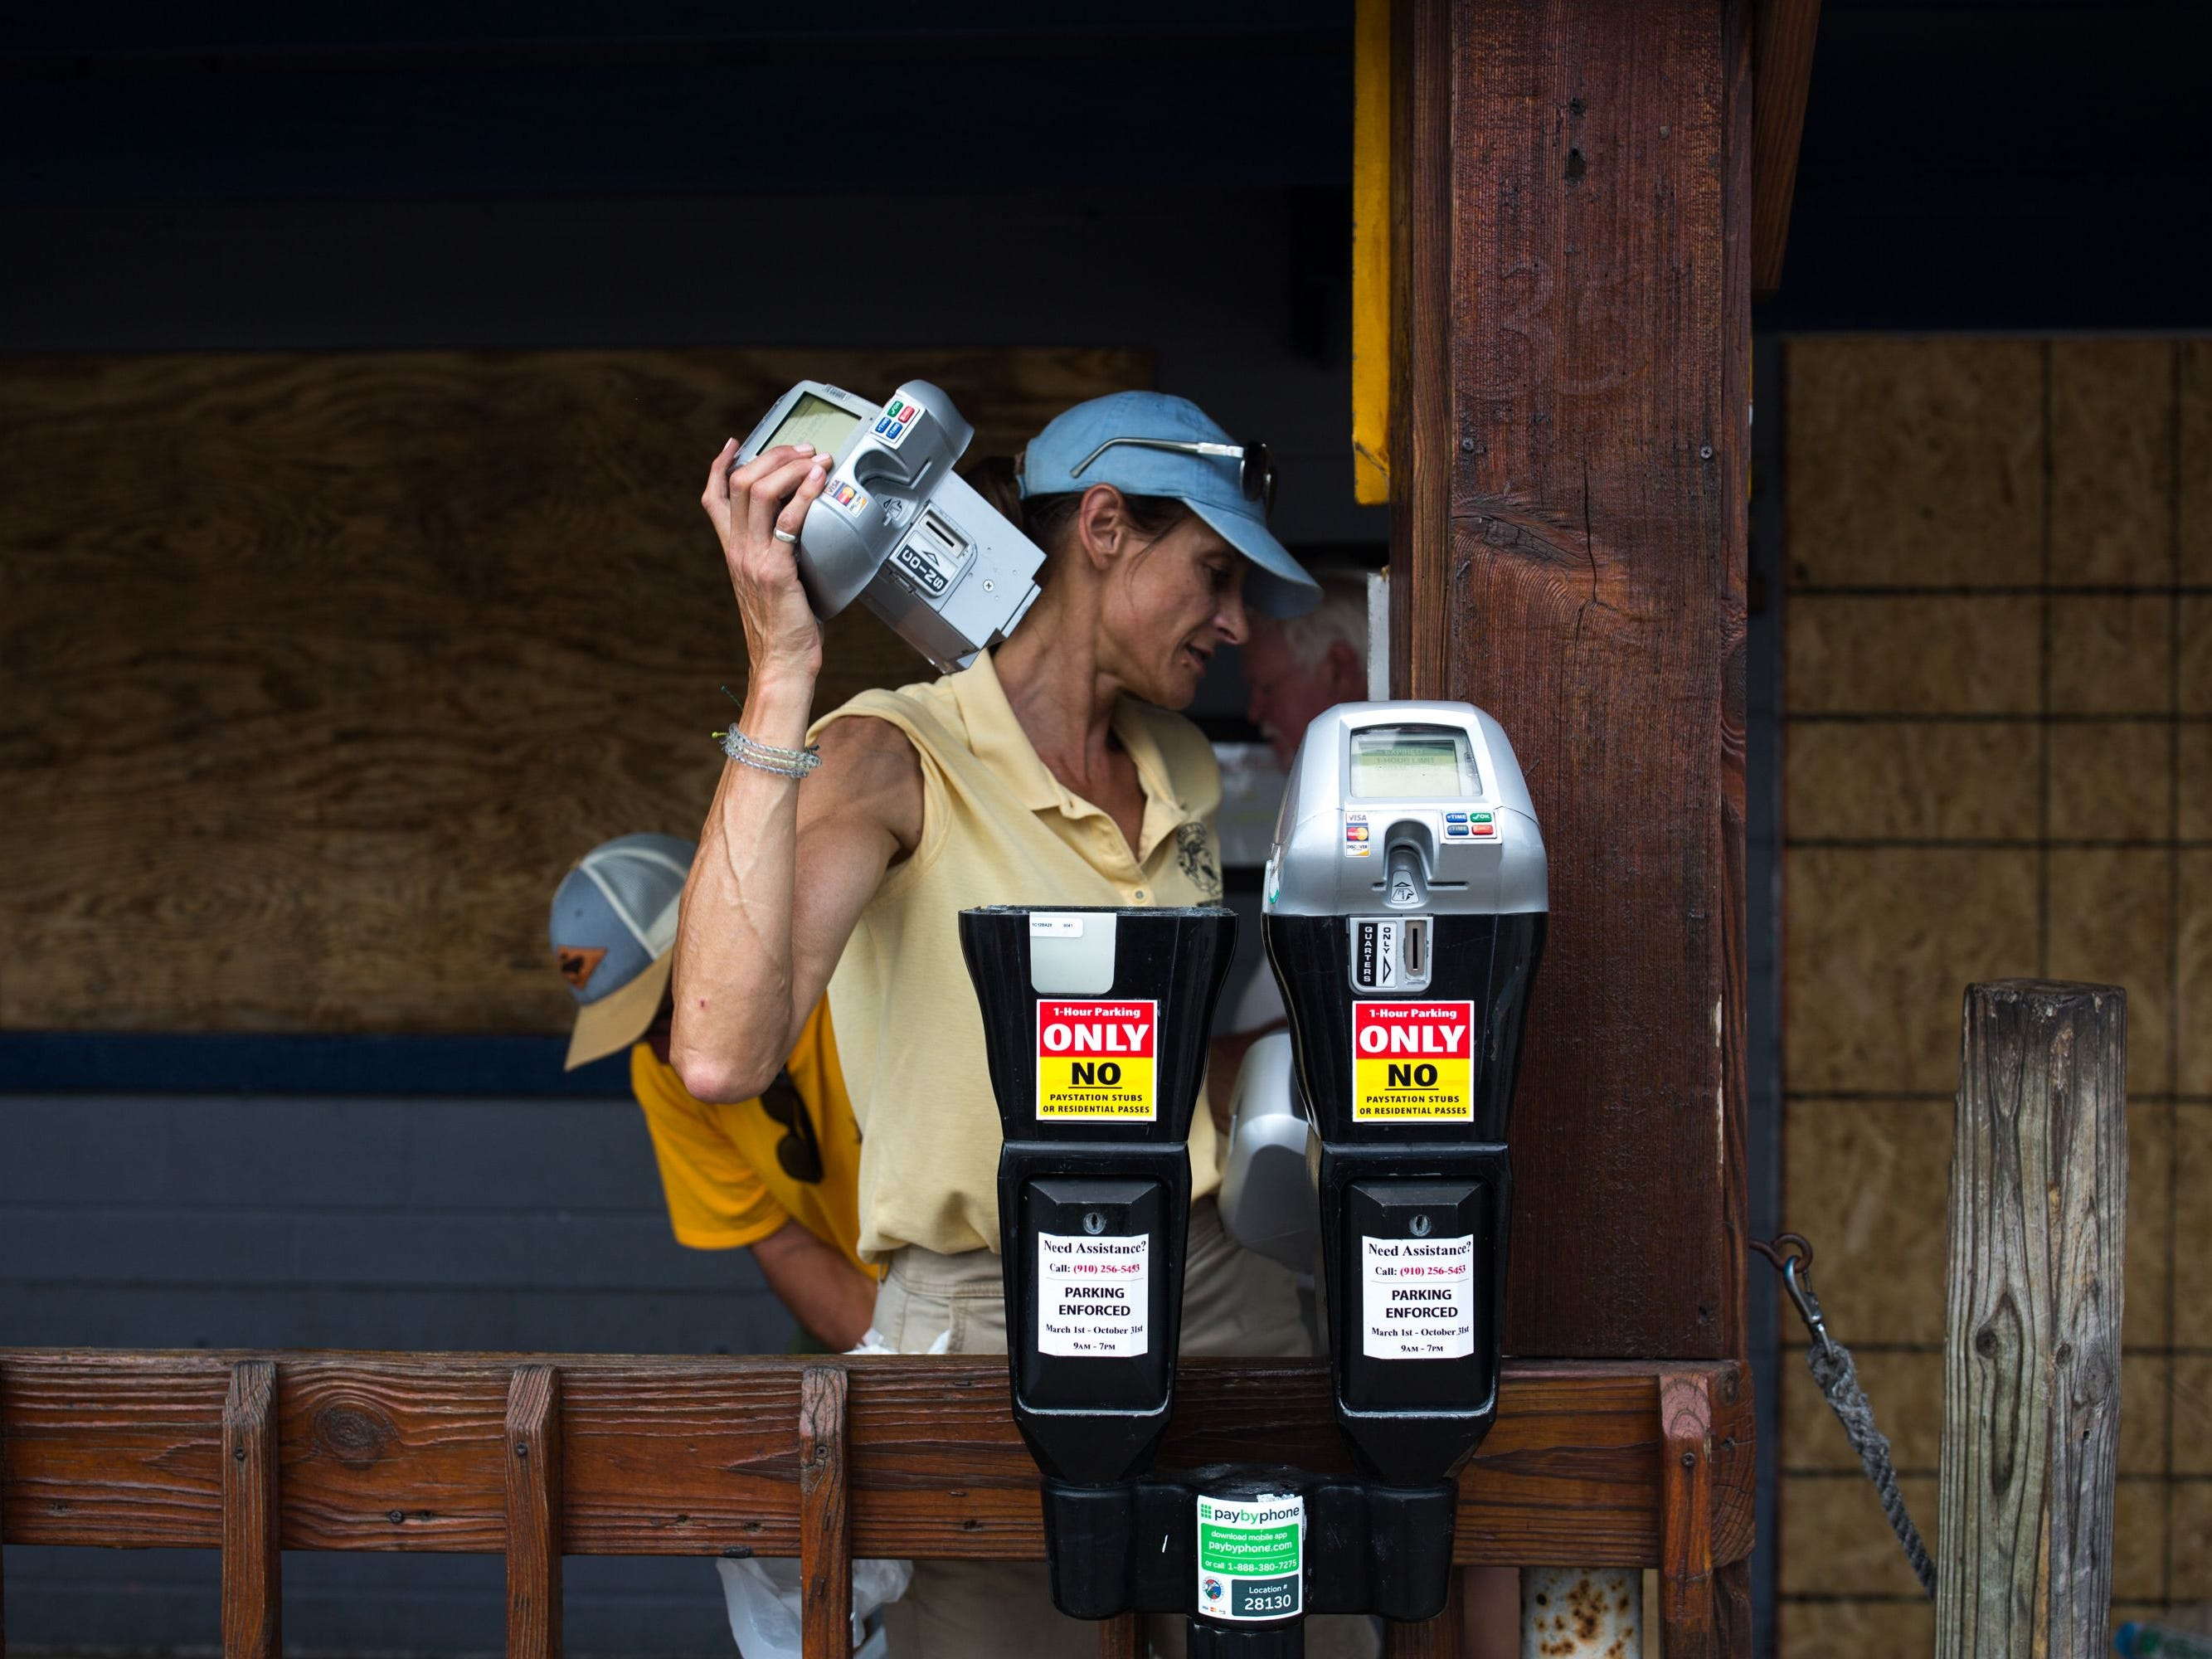 An employee of the Wrightsville Beach Parking office, collects the electronic parts of the parking meters on North Lumina Avenue in Wrightsville Beach, removing the meters in anticipation of Hurricane Florence's high storm surge. - More than a million people were under evacuation orders in the eastern United States Tuesday, where powerful Hurricane Florence threatened catastrophic damage to a region popular with vacationers and home to crucial government institutions. (Photo by Logan CYRUS / AFP)LOGAN CYRUS/AFP/Getty Images ORIG FILE ID: AFP_1908LM